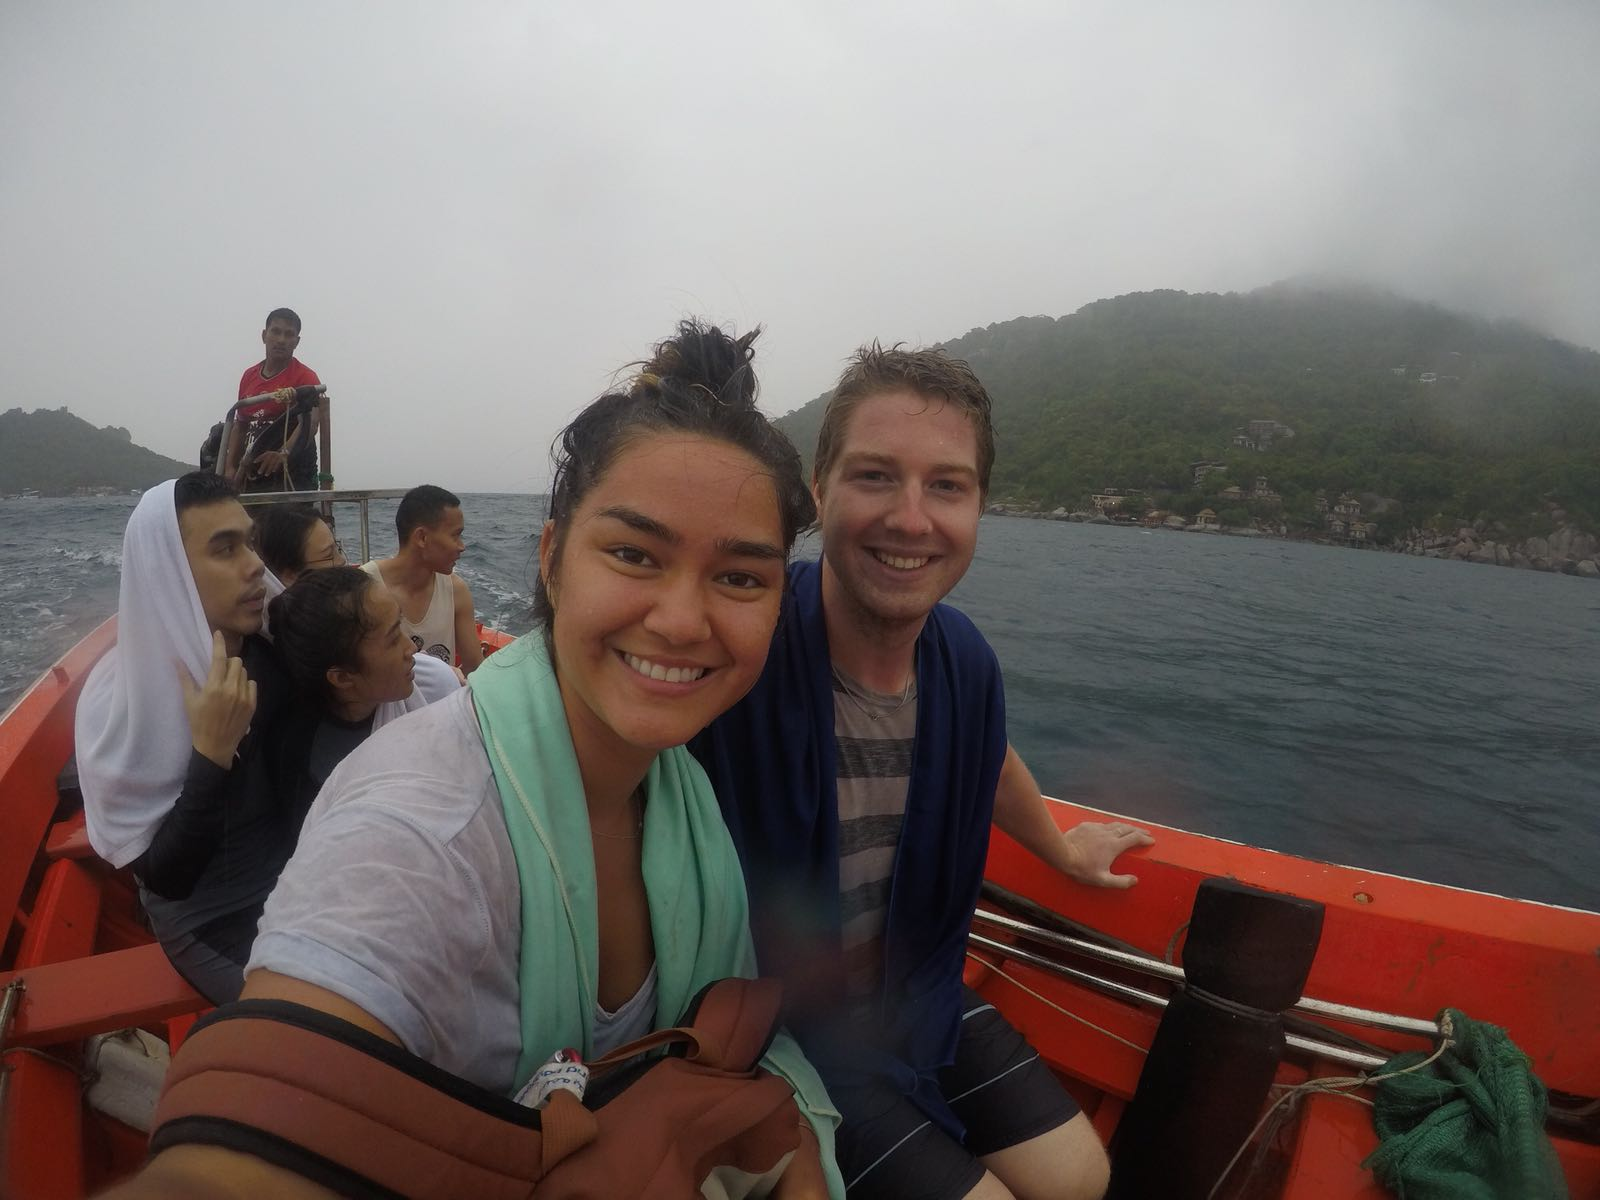 Our terrifying ride back to Koh Tao through the storm.